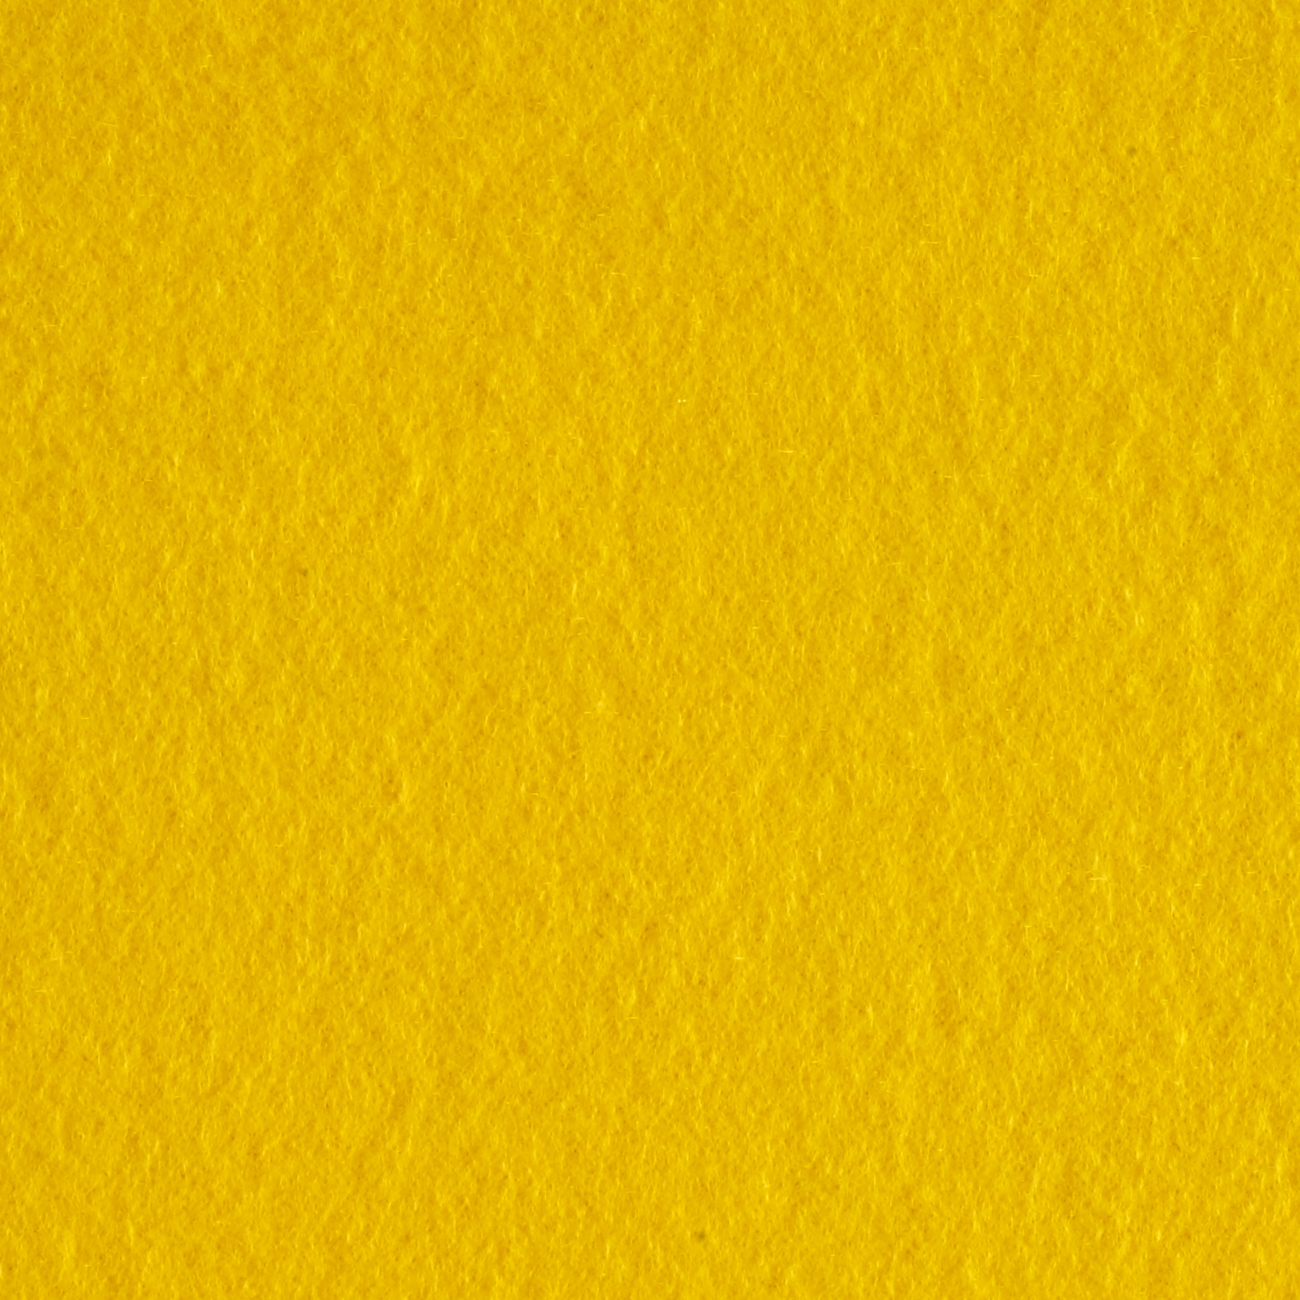 Polar Fleece Solid Bright Yellow Fabric by Newcastle in USA